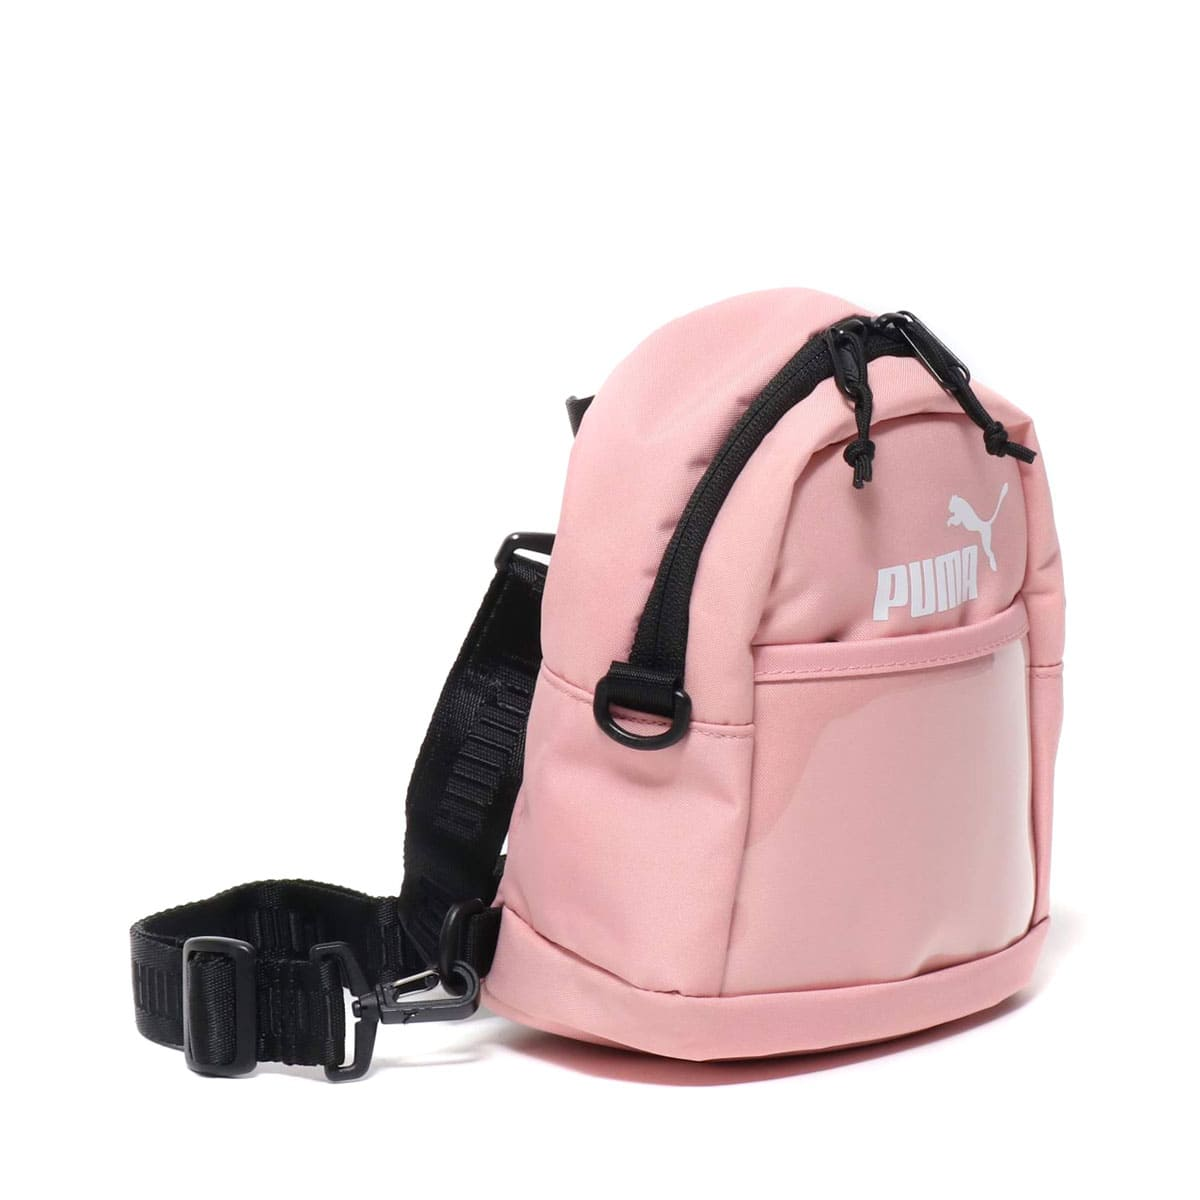 PUMA WS CORE MINI ME BACKPACK BRIDAL ROSE 19HO-I_photo_large